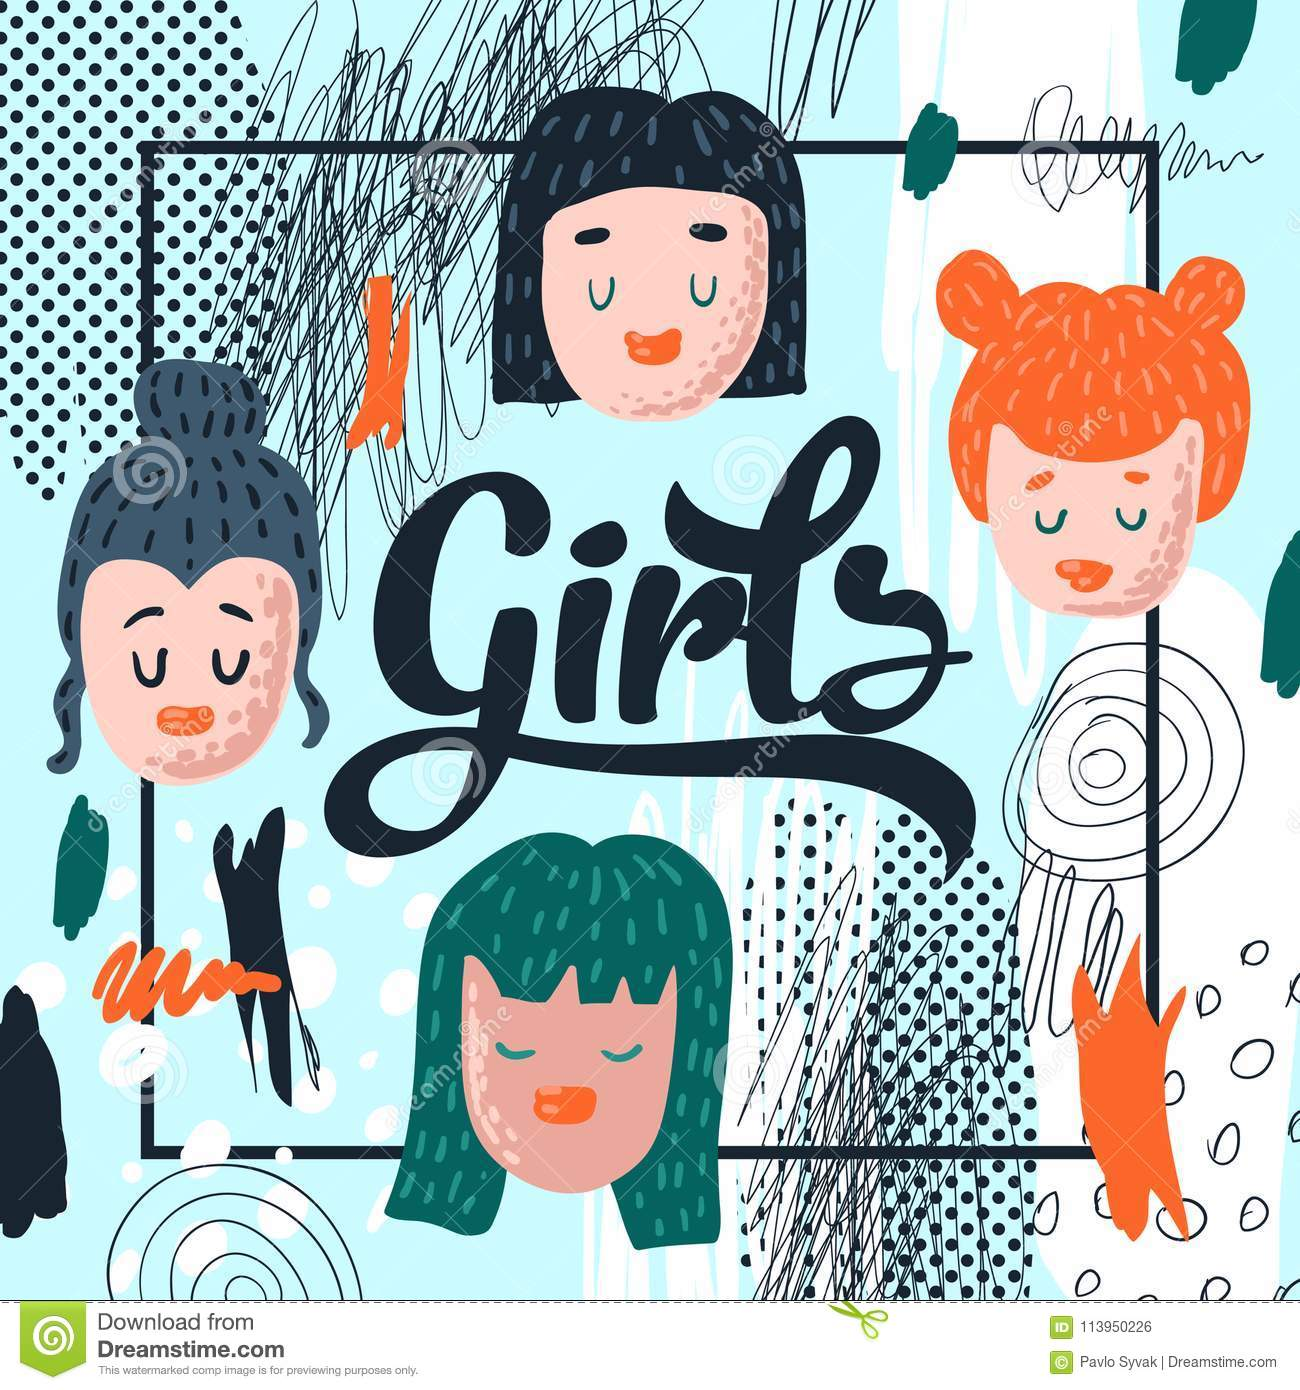 Girlish Hand Drawn Design. Hand Drawn Childish Background with Cute Girl Faces for Poster, Greeting Card, Decoration